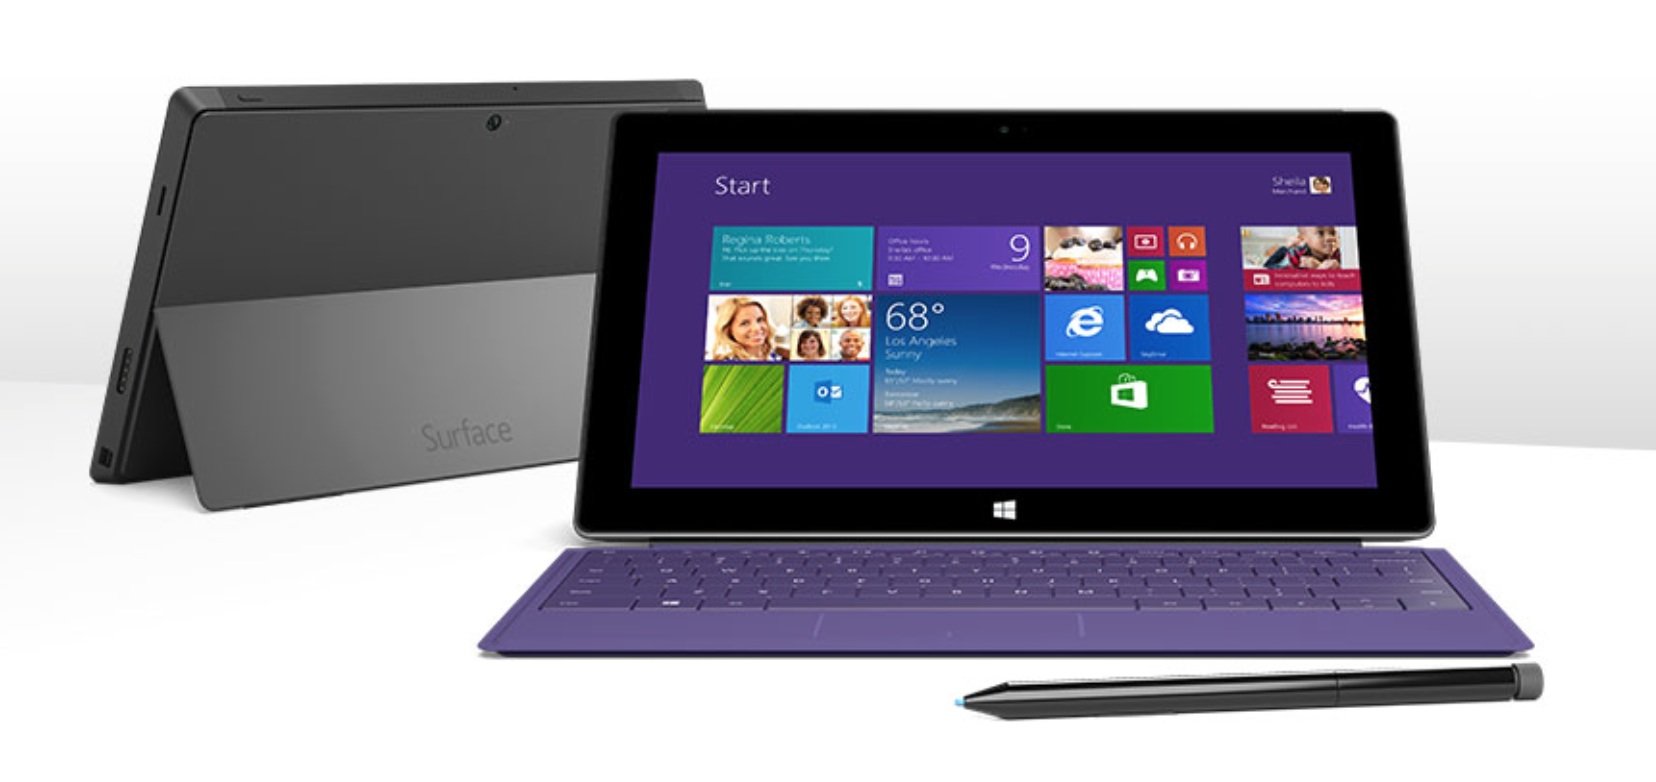 http://thedigitalstory.com/2013/12/06/surface-pro-2-front.jpg